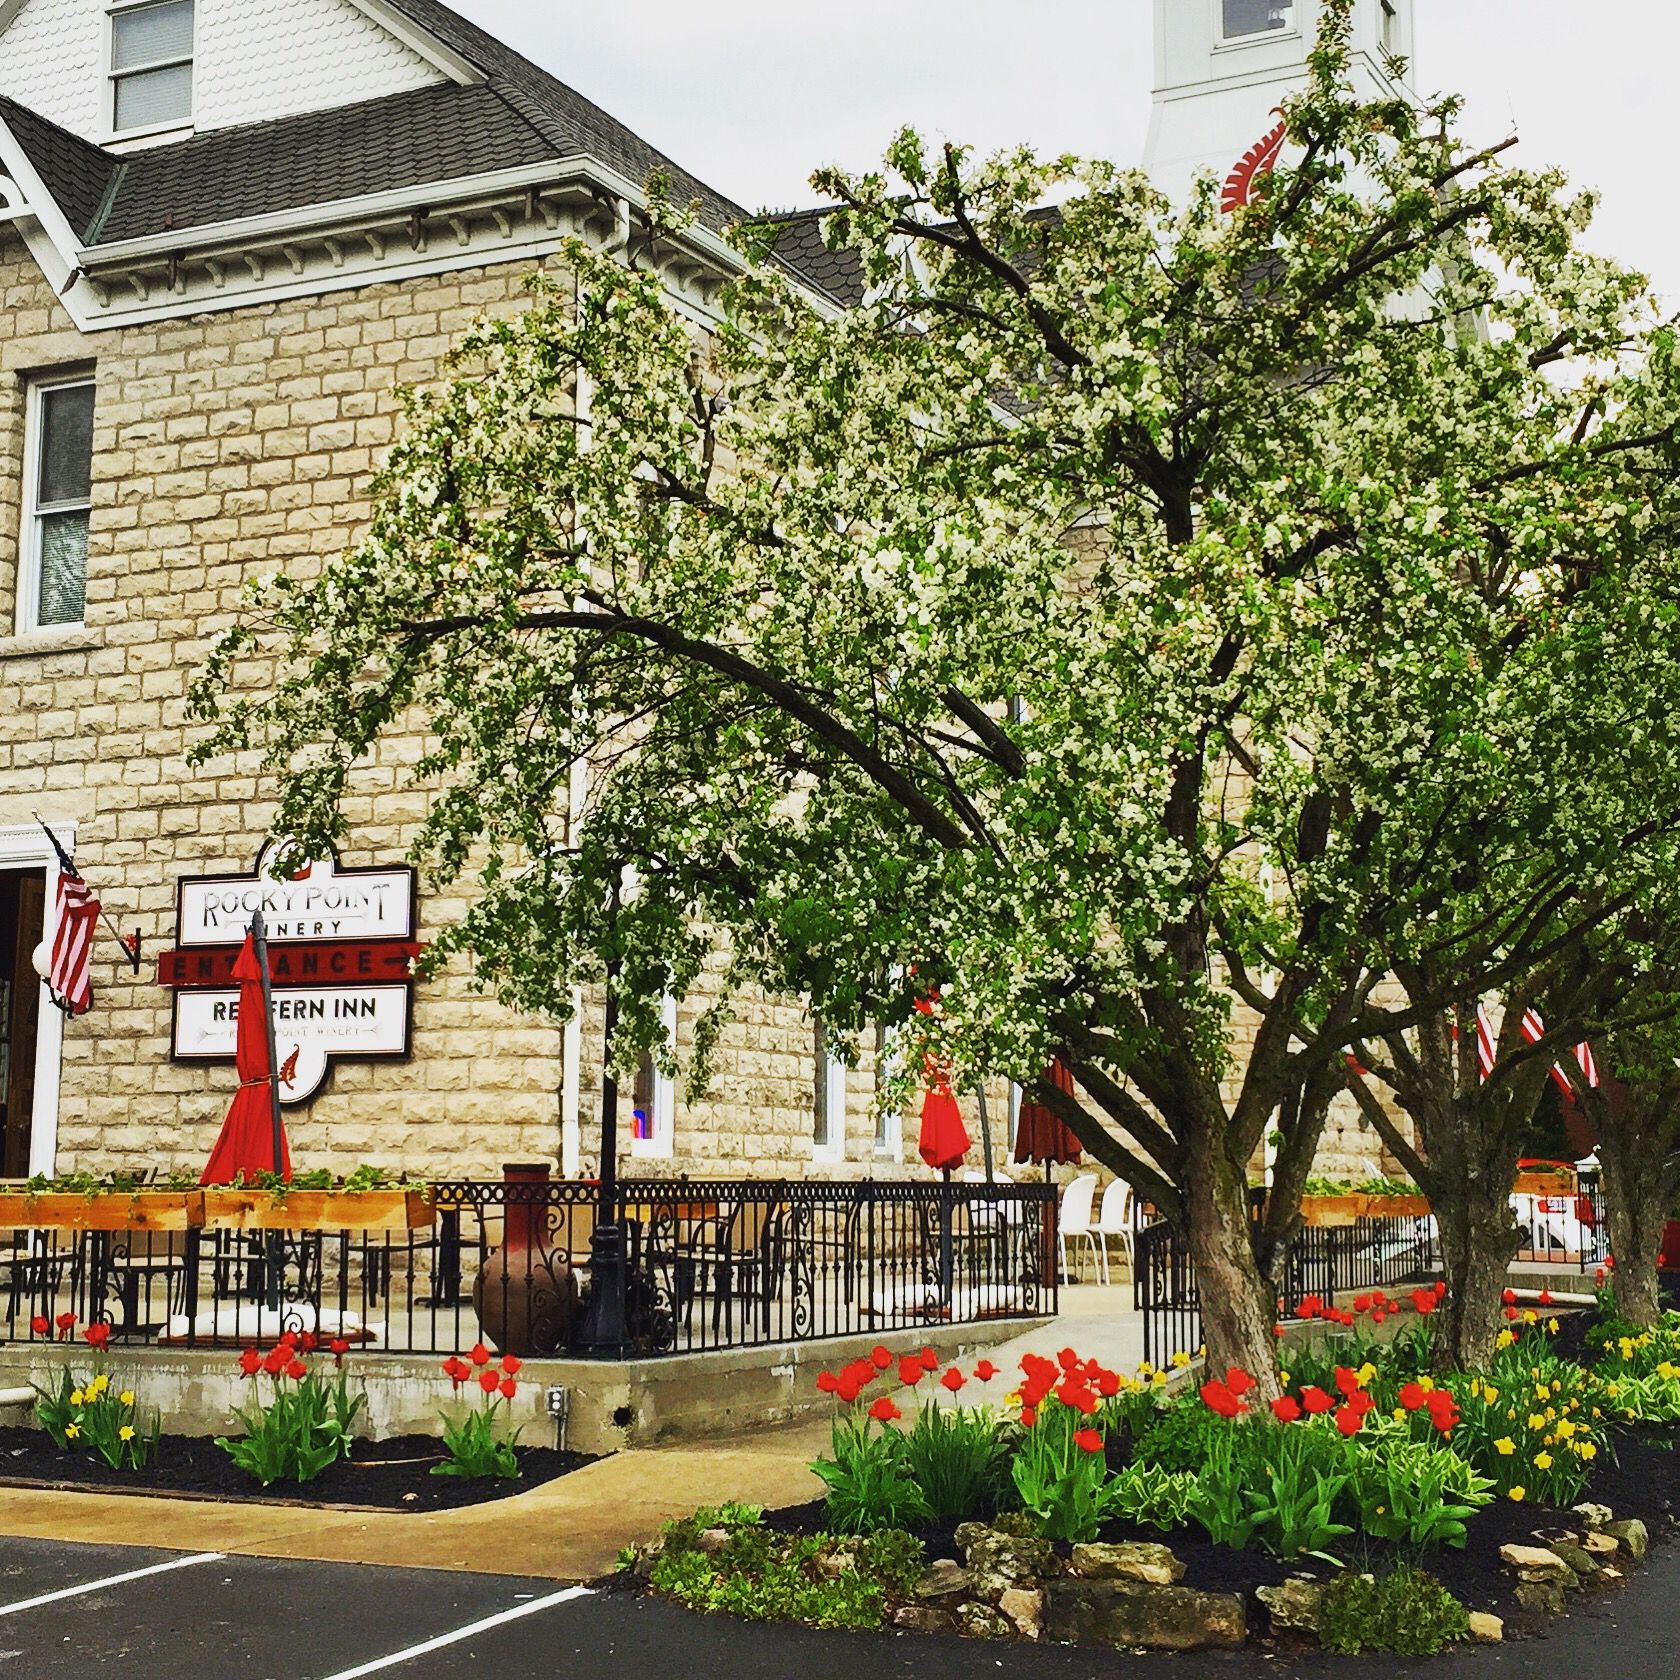 Some Businesses Really Get The Power Of Flowers Gardens And Curb Appeal Most Don T Red Fern Inn At Rocky Poi Curb Appeal Flower Garden Spring Garden Flowers